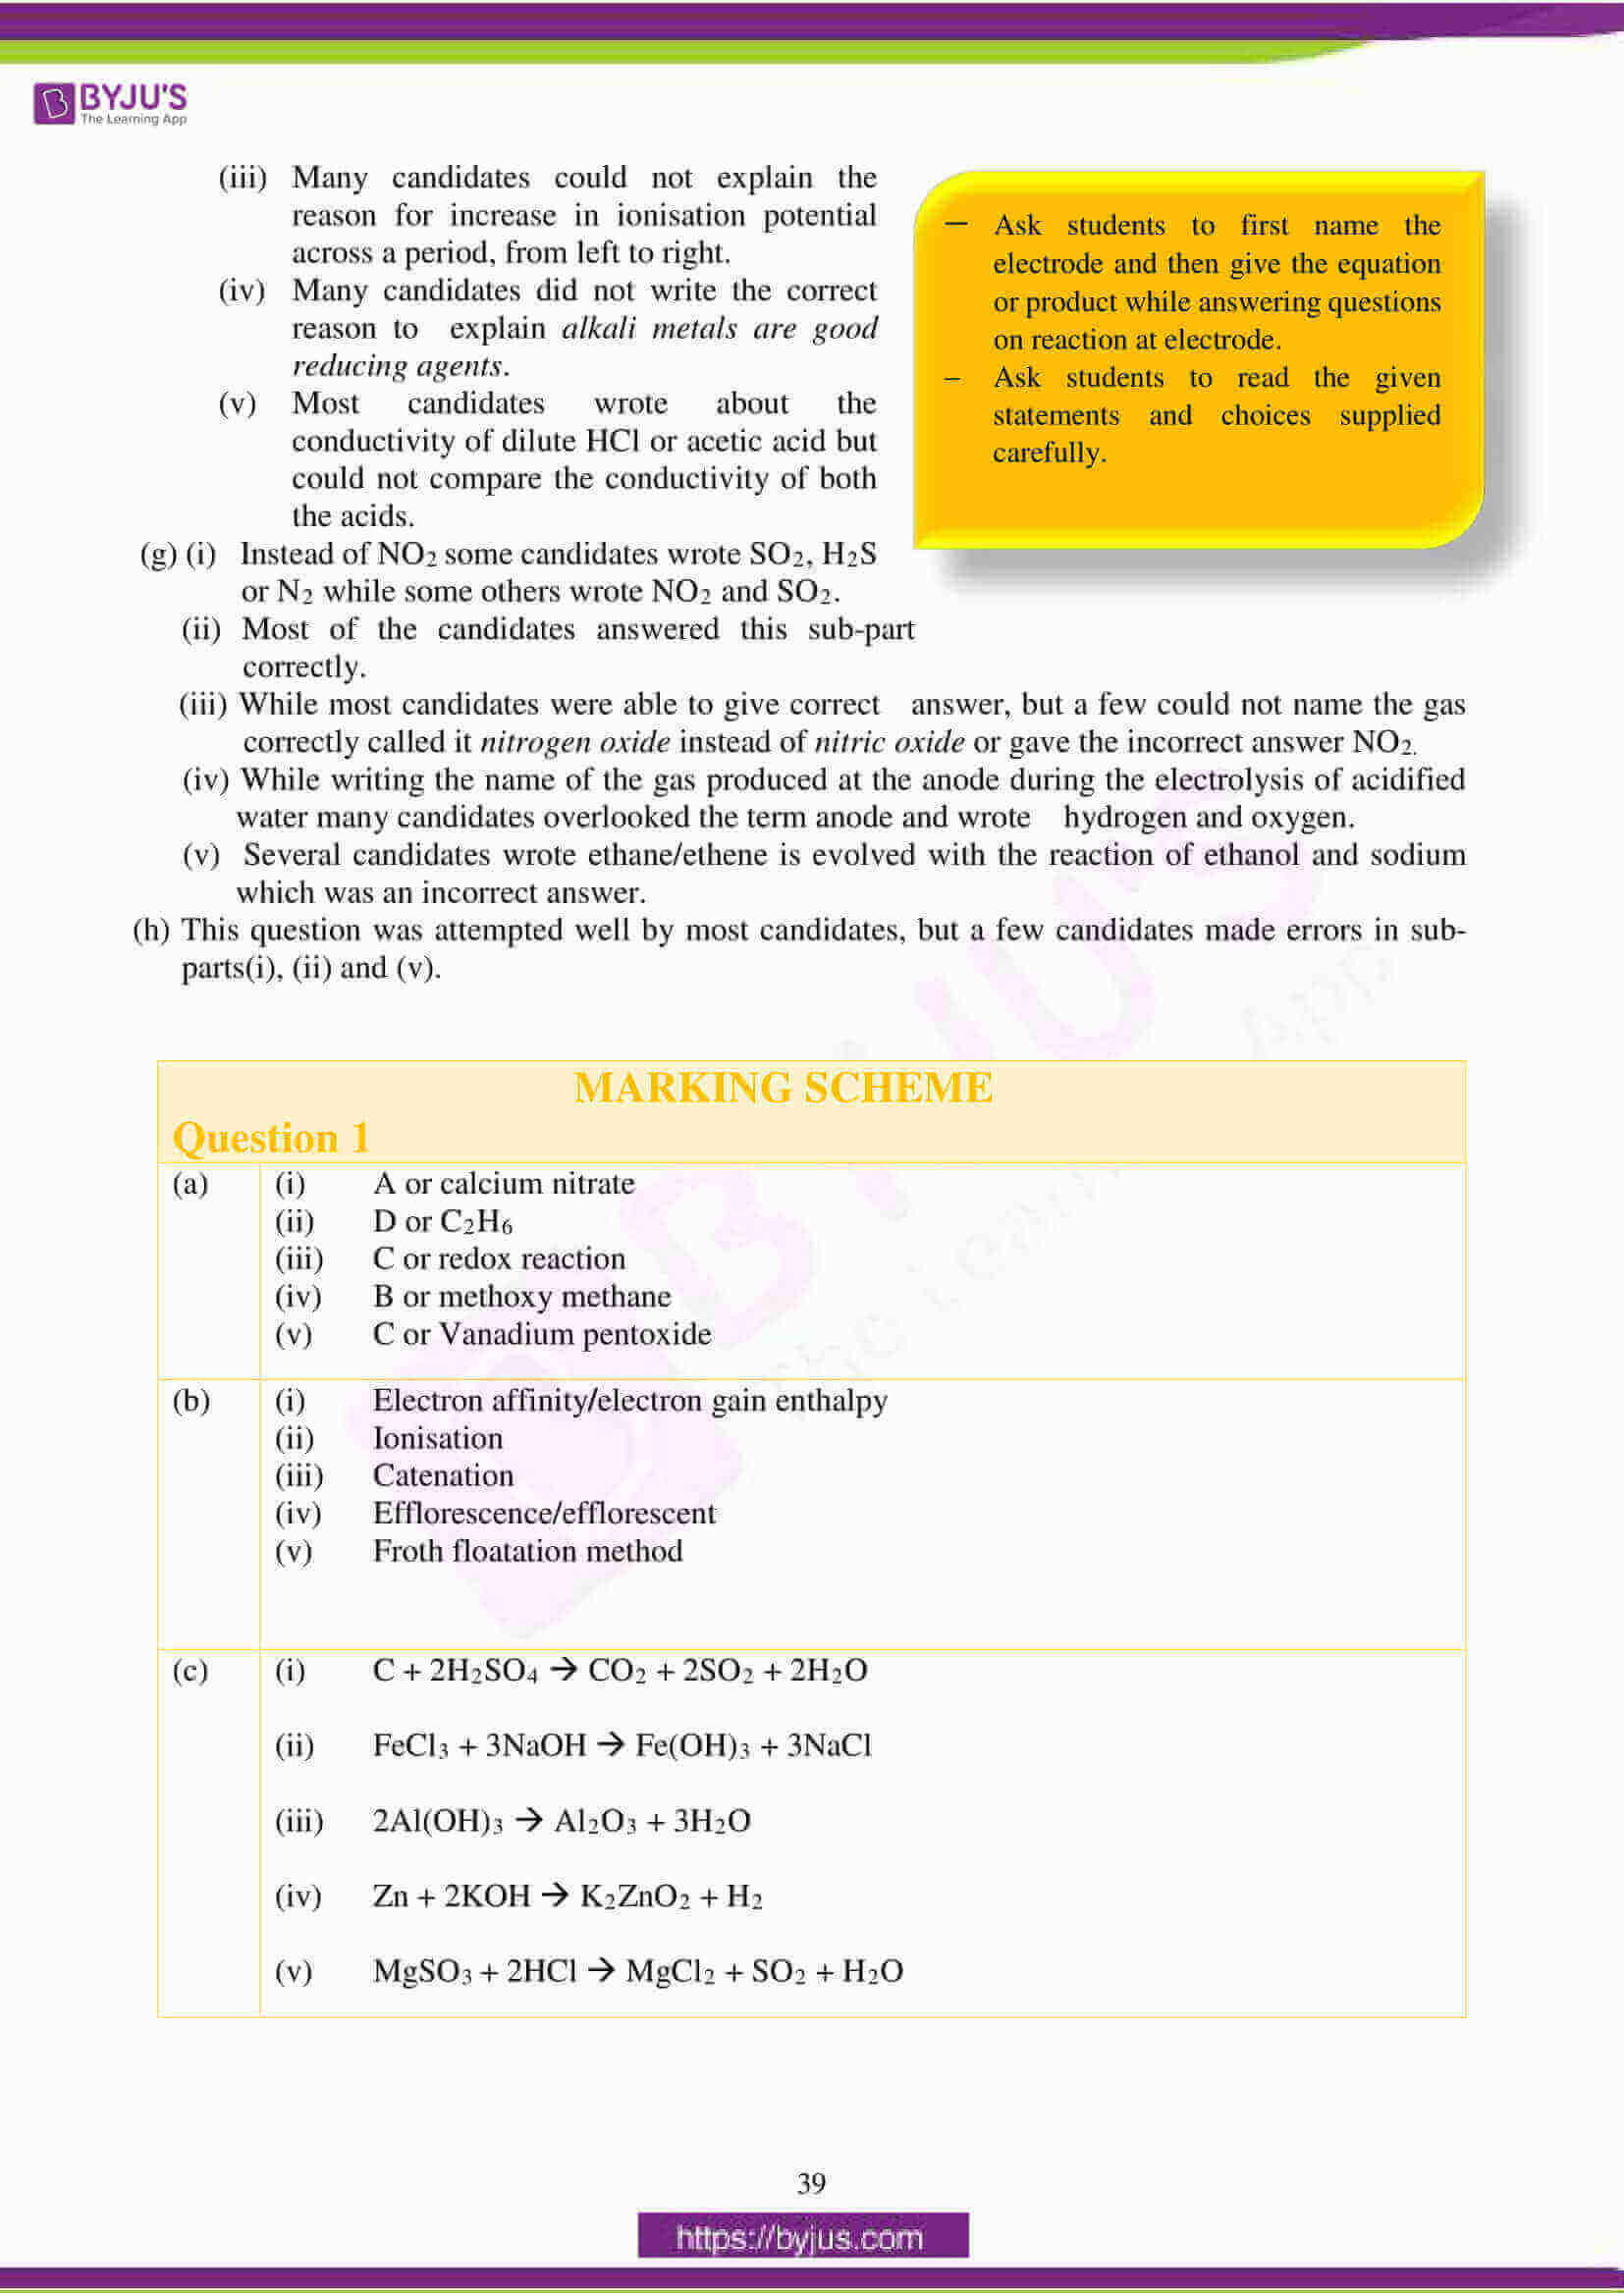 icse class 10 chemistry question paper solution 2018 06